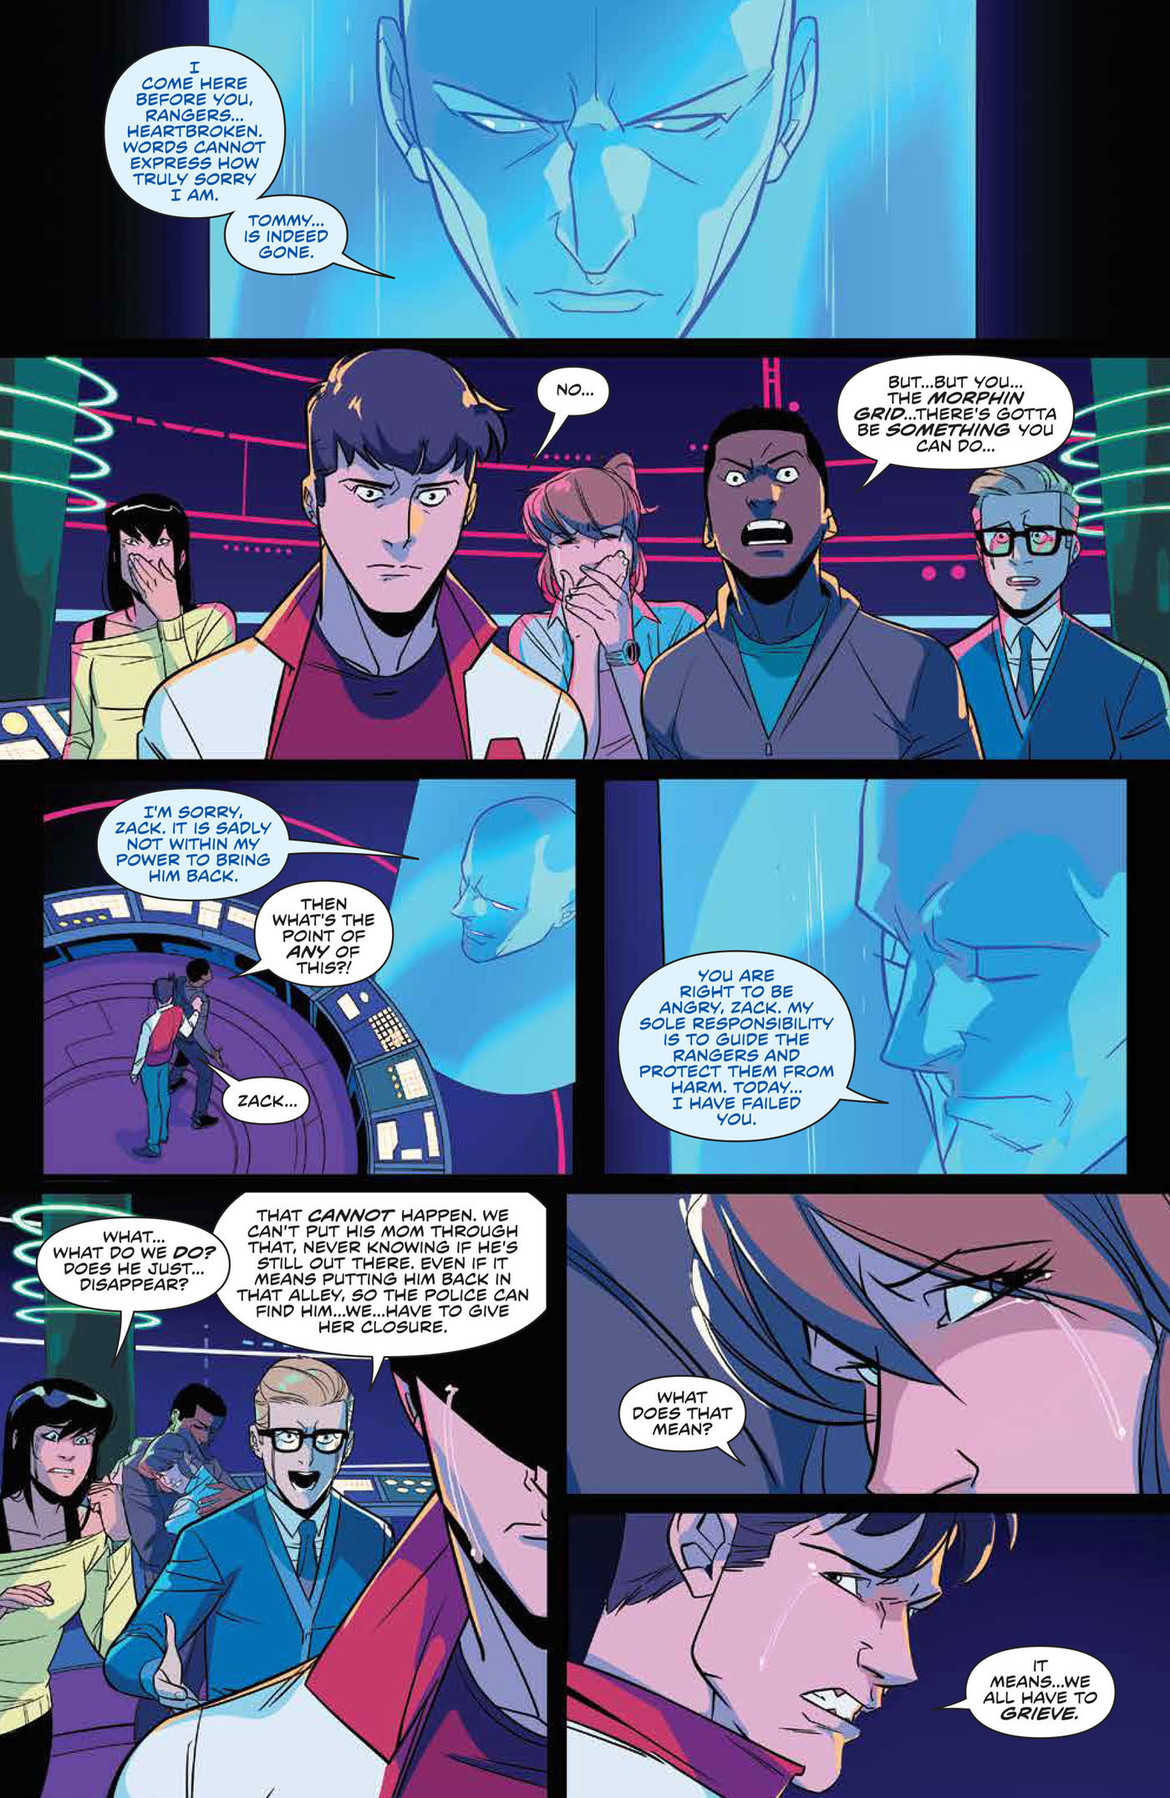 mighty_morphin_power_rangers_26_page_2.jpg